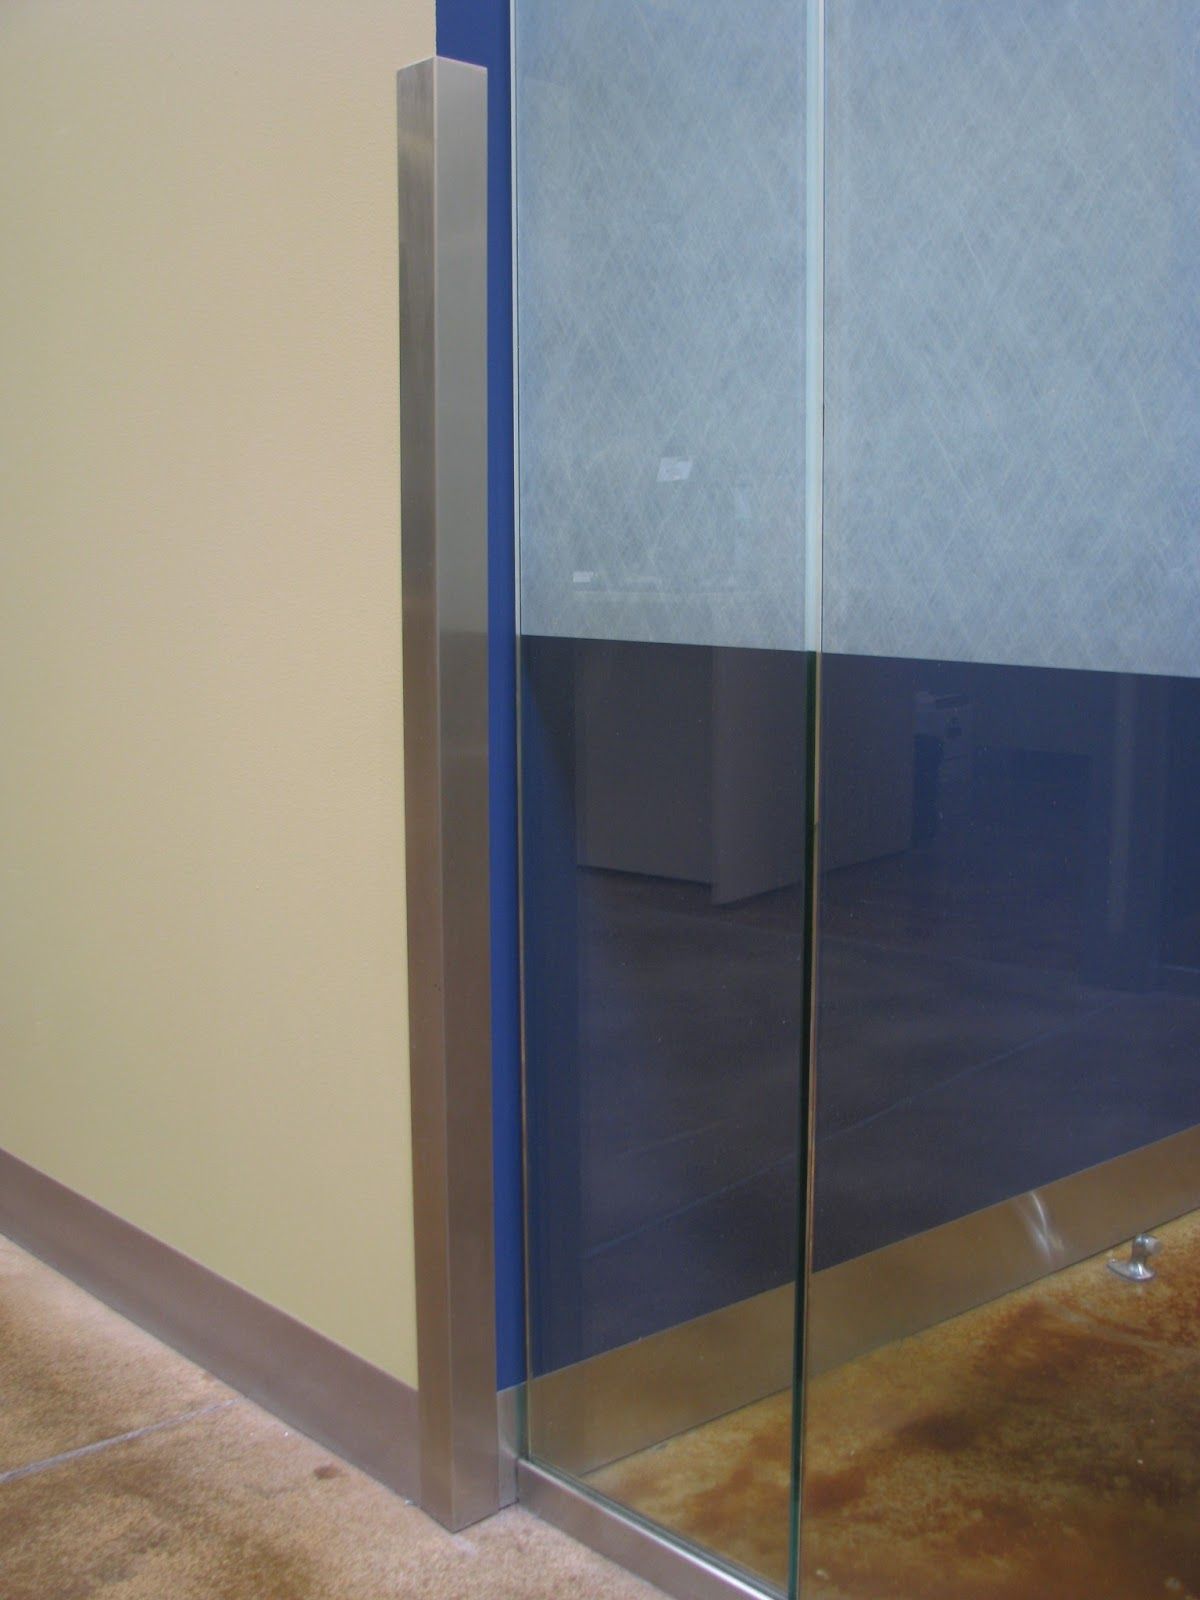 Stainless Steel Corner : Stainless steel corner guards images